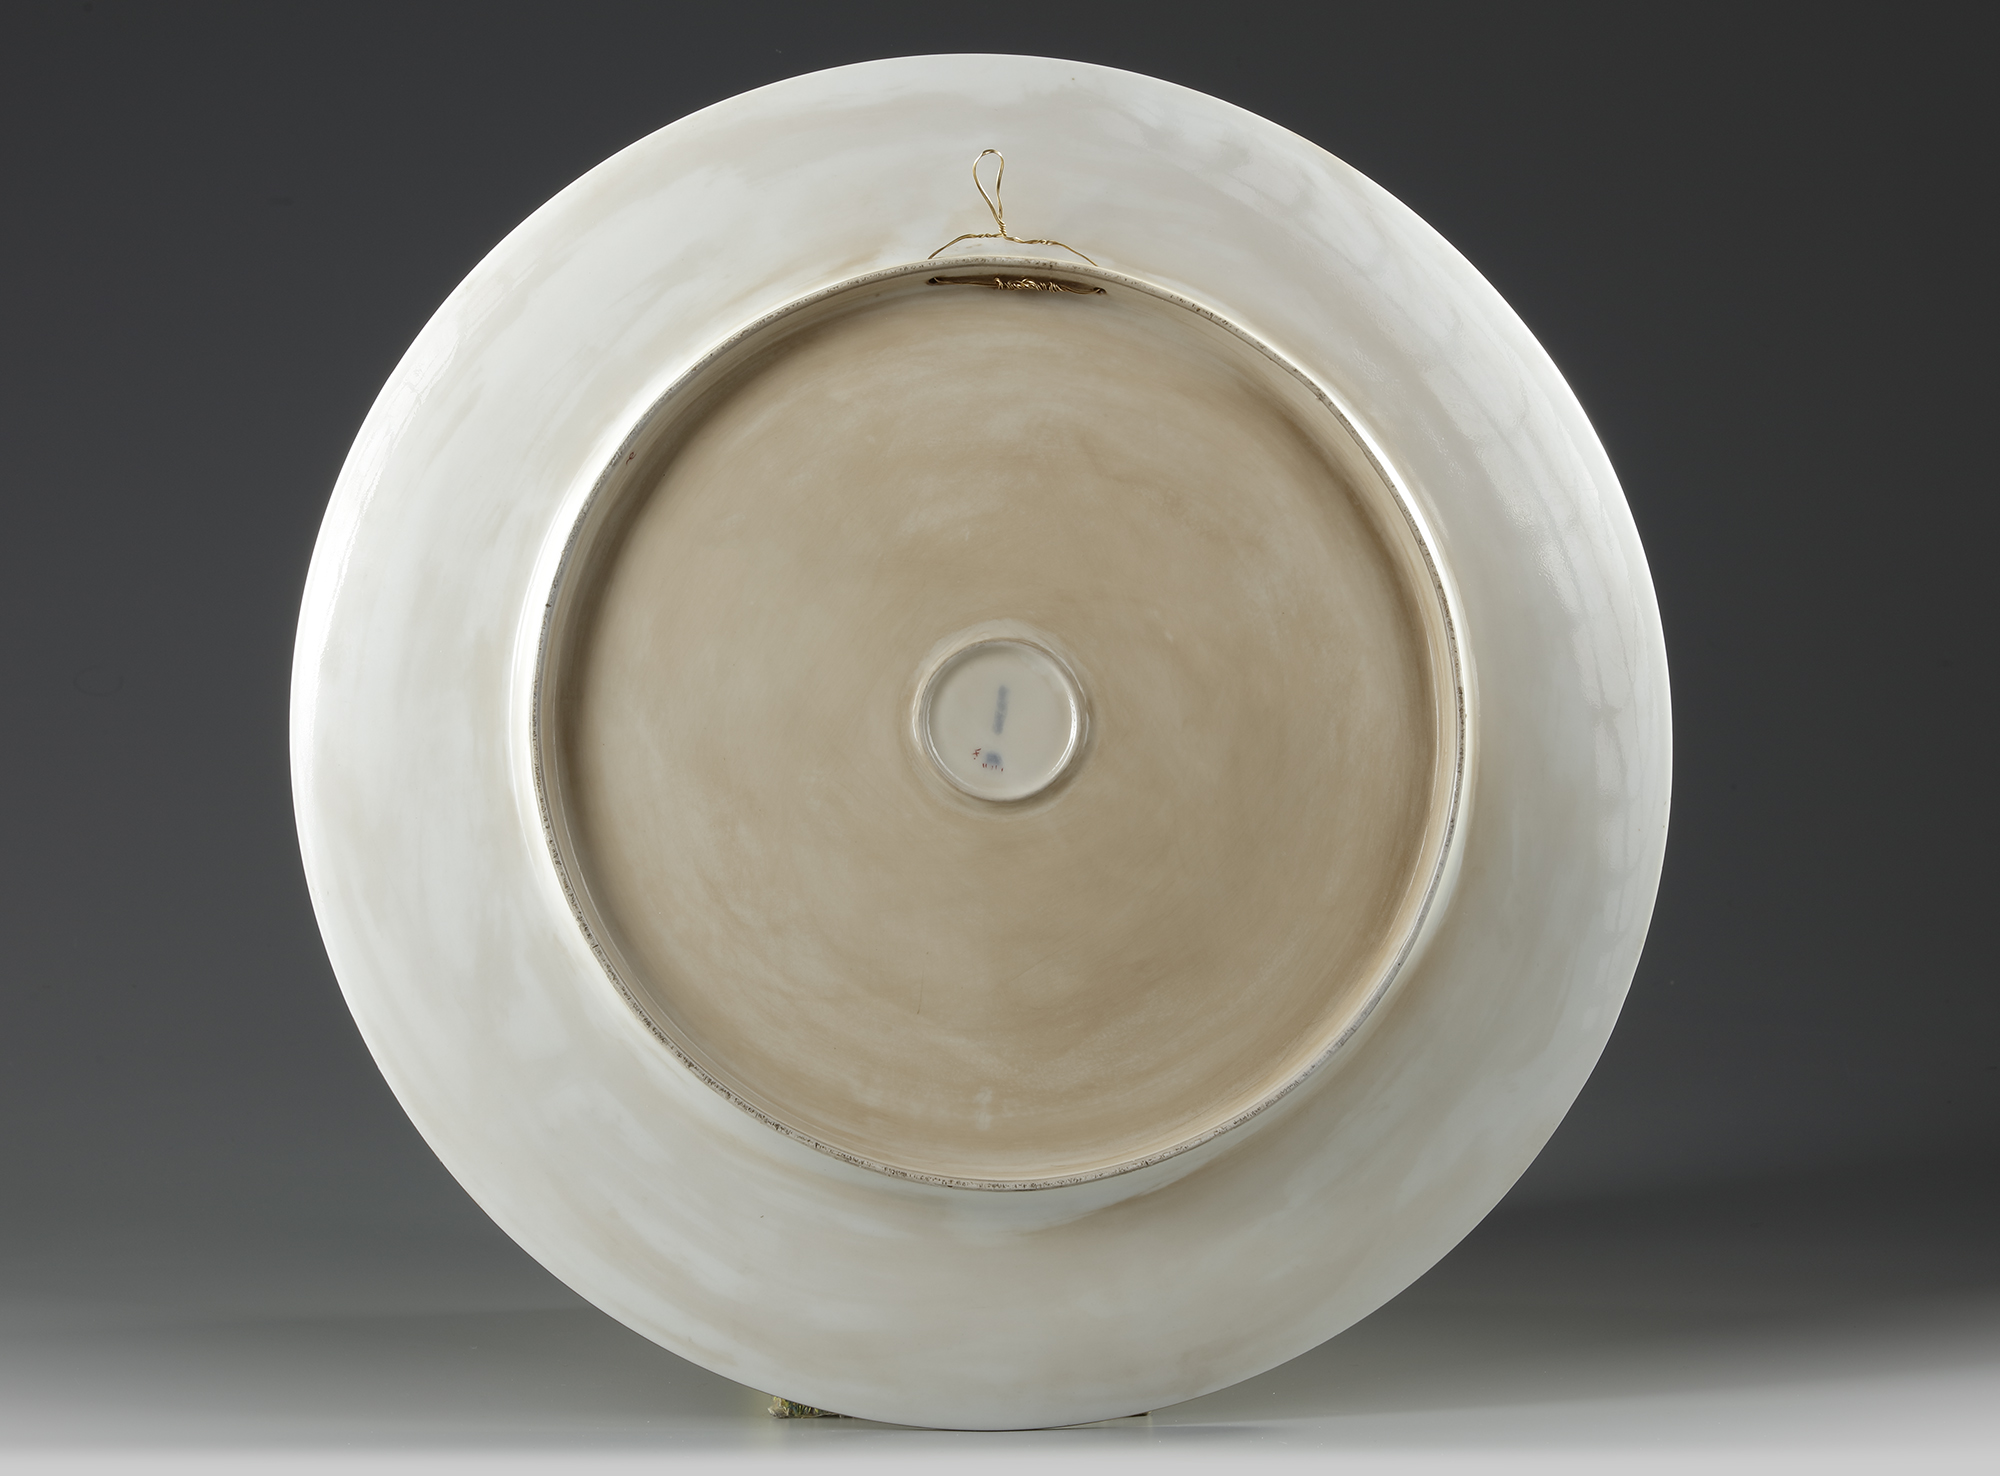 A FRENCH PORCELAIN PLATE, LATE 19TH CENTURY - Image 2 of 2